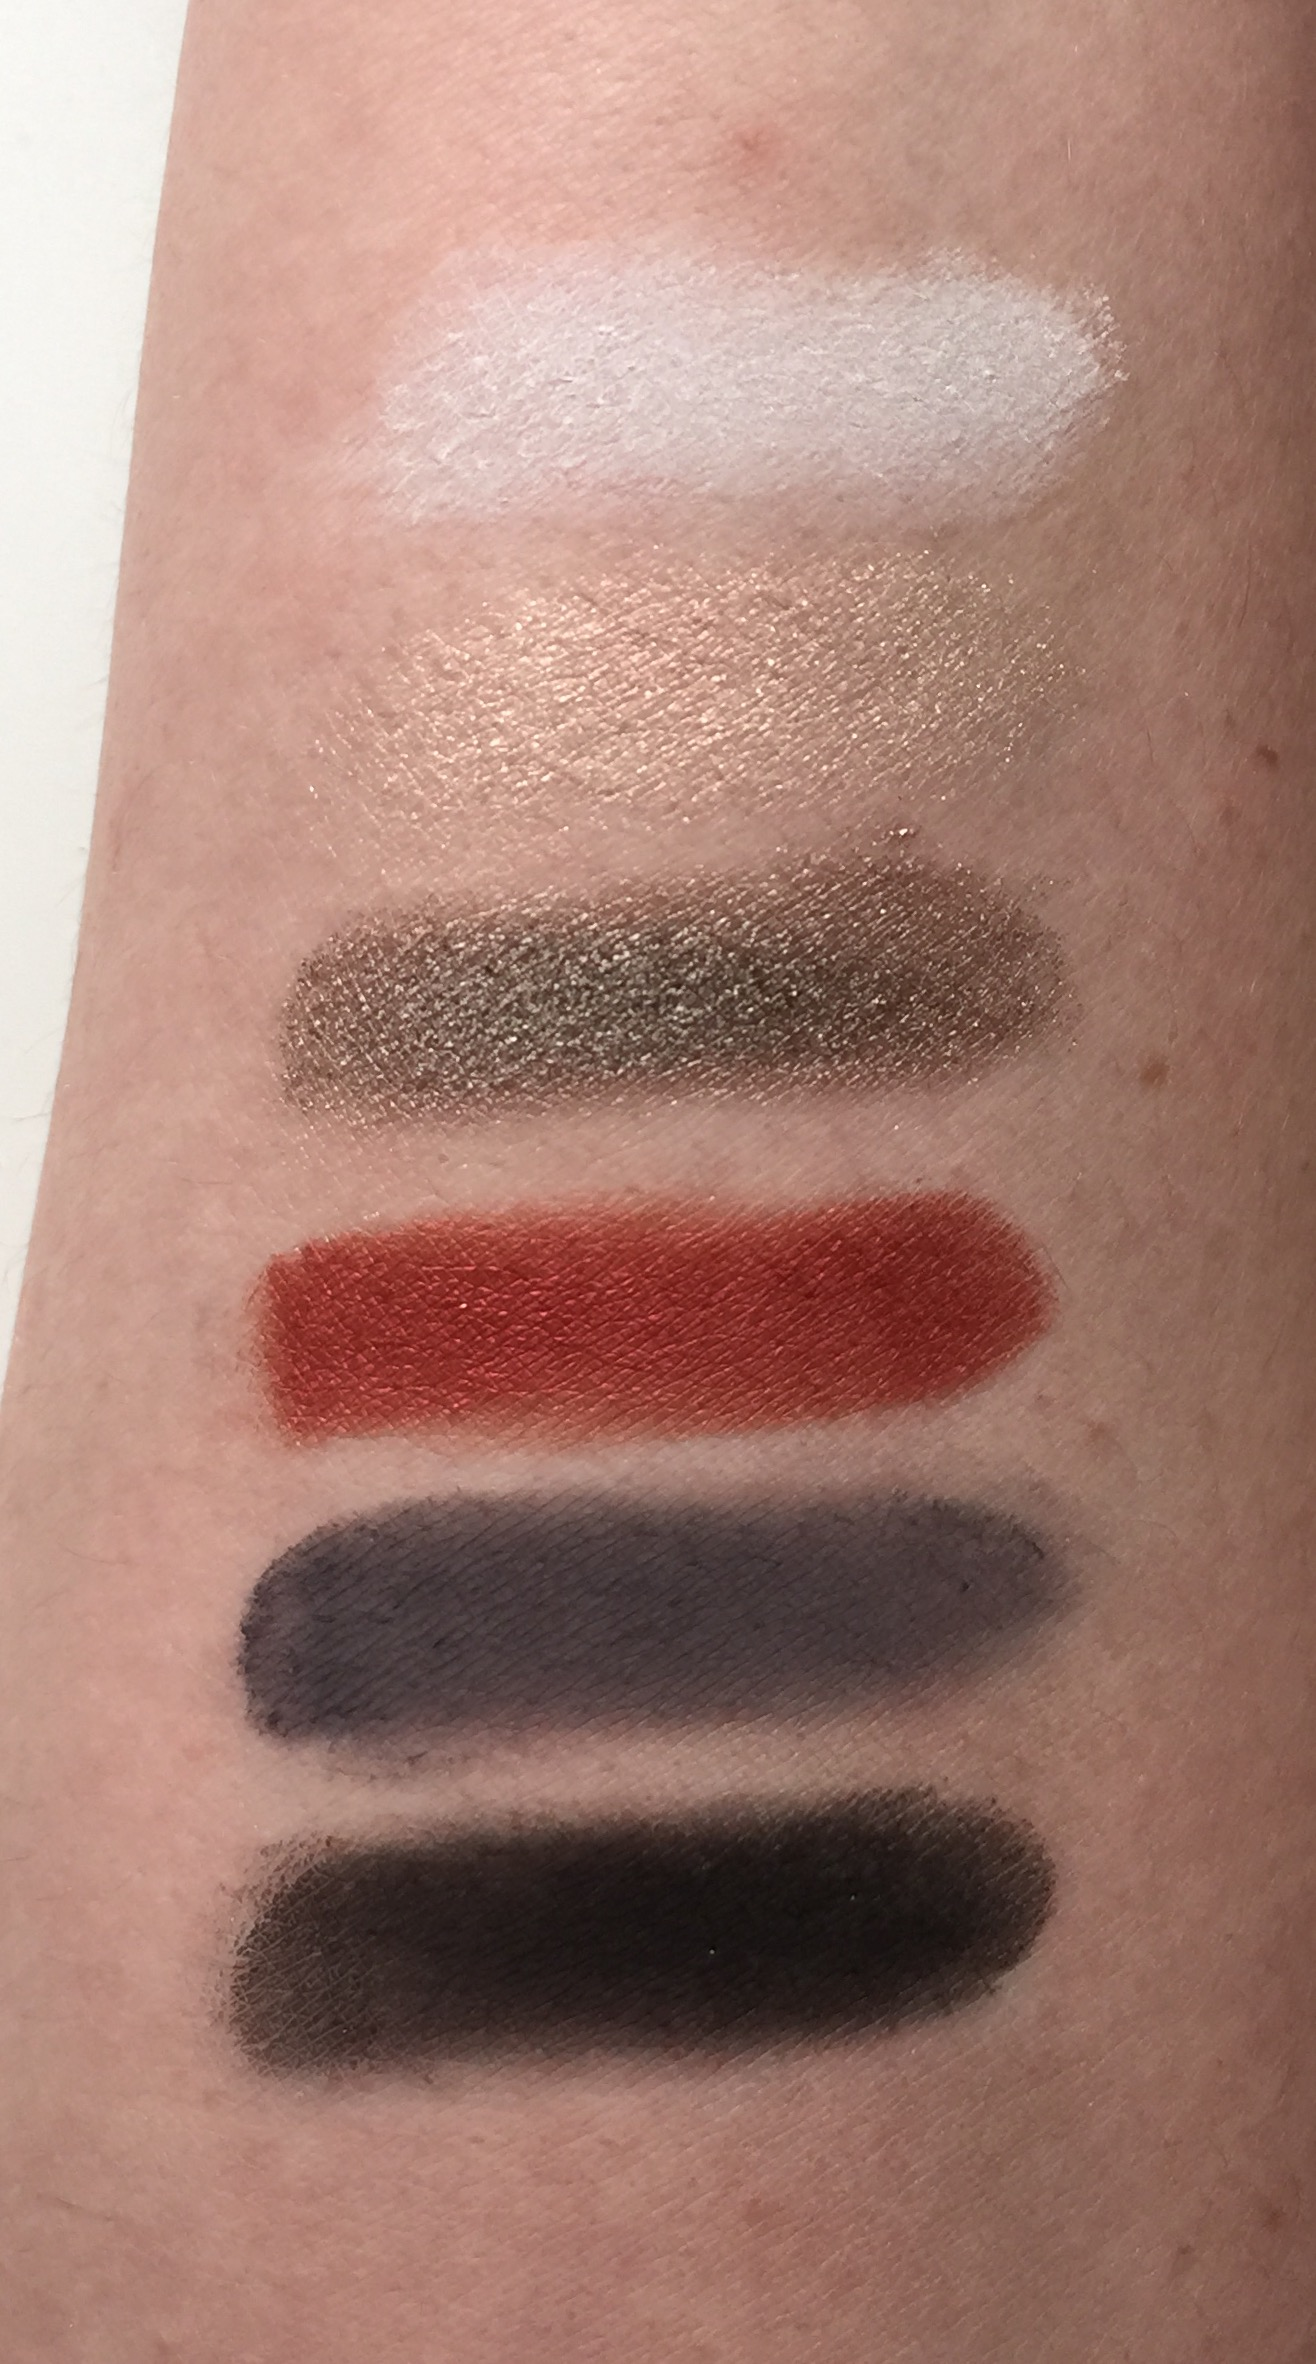 Believe The Hype: Kat Von D Better Together Collection Swatches - Natural Light